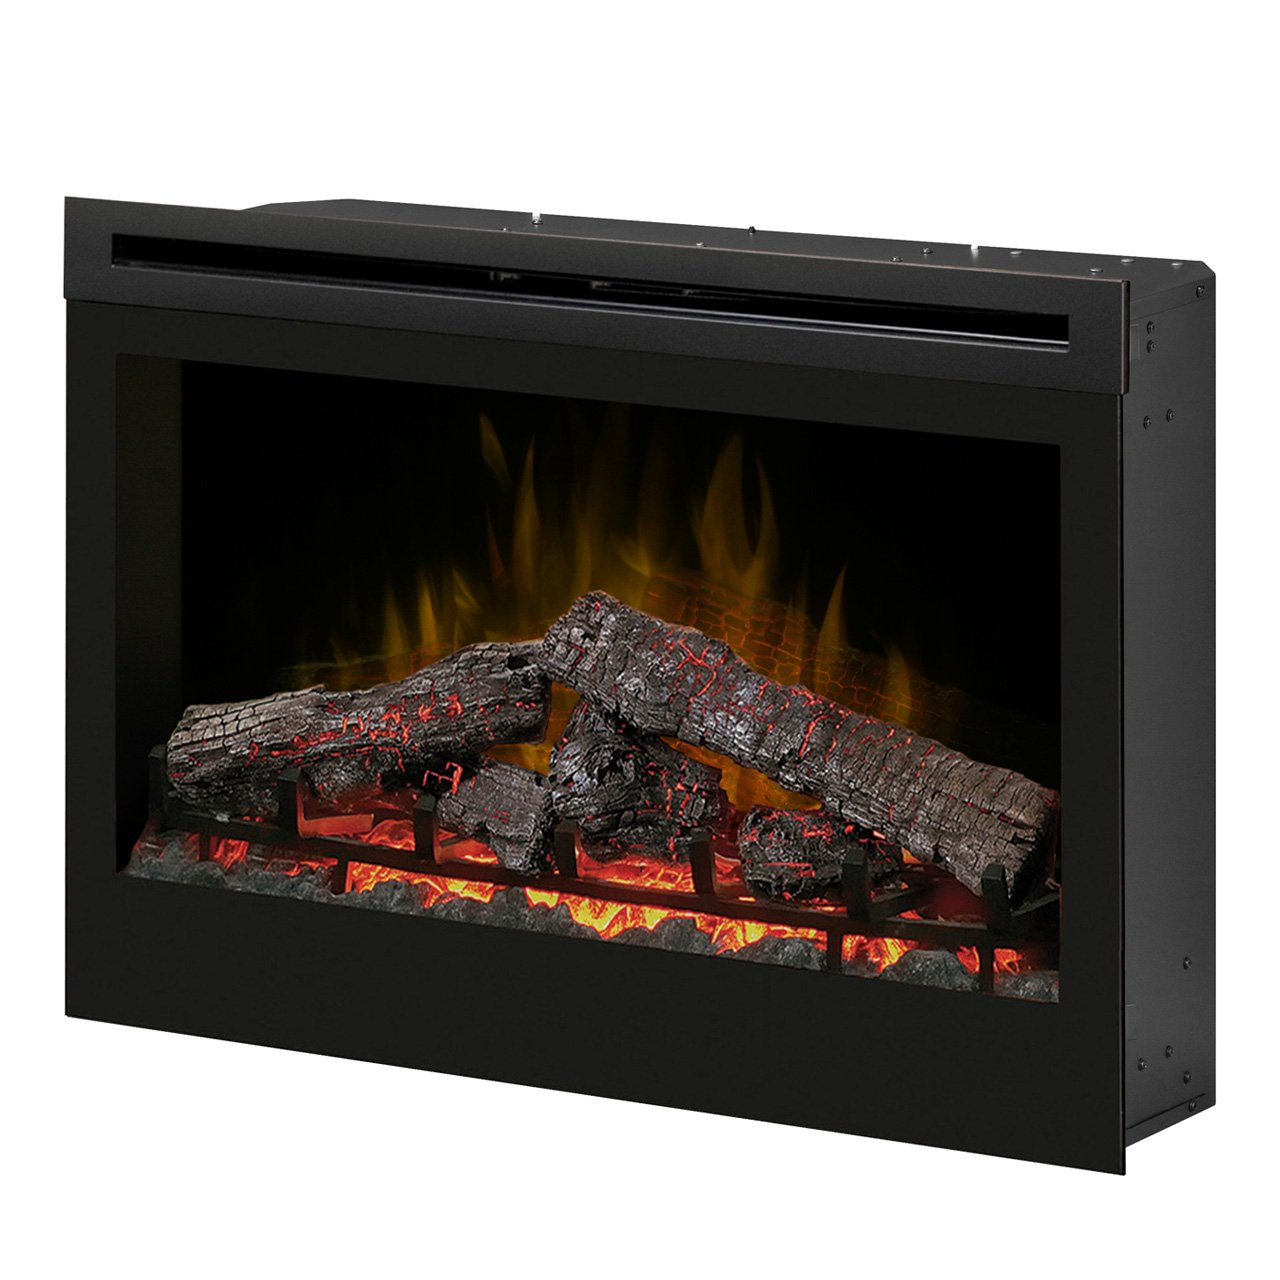 Fireplace Heater Electric Awesome Dimplex Df3033st 33 Inch Self Trimming Electric Fireplace Insert